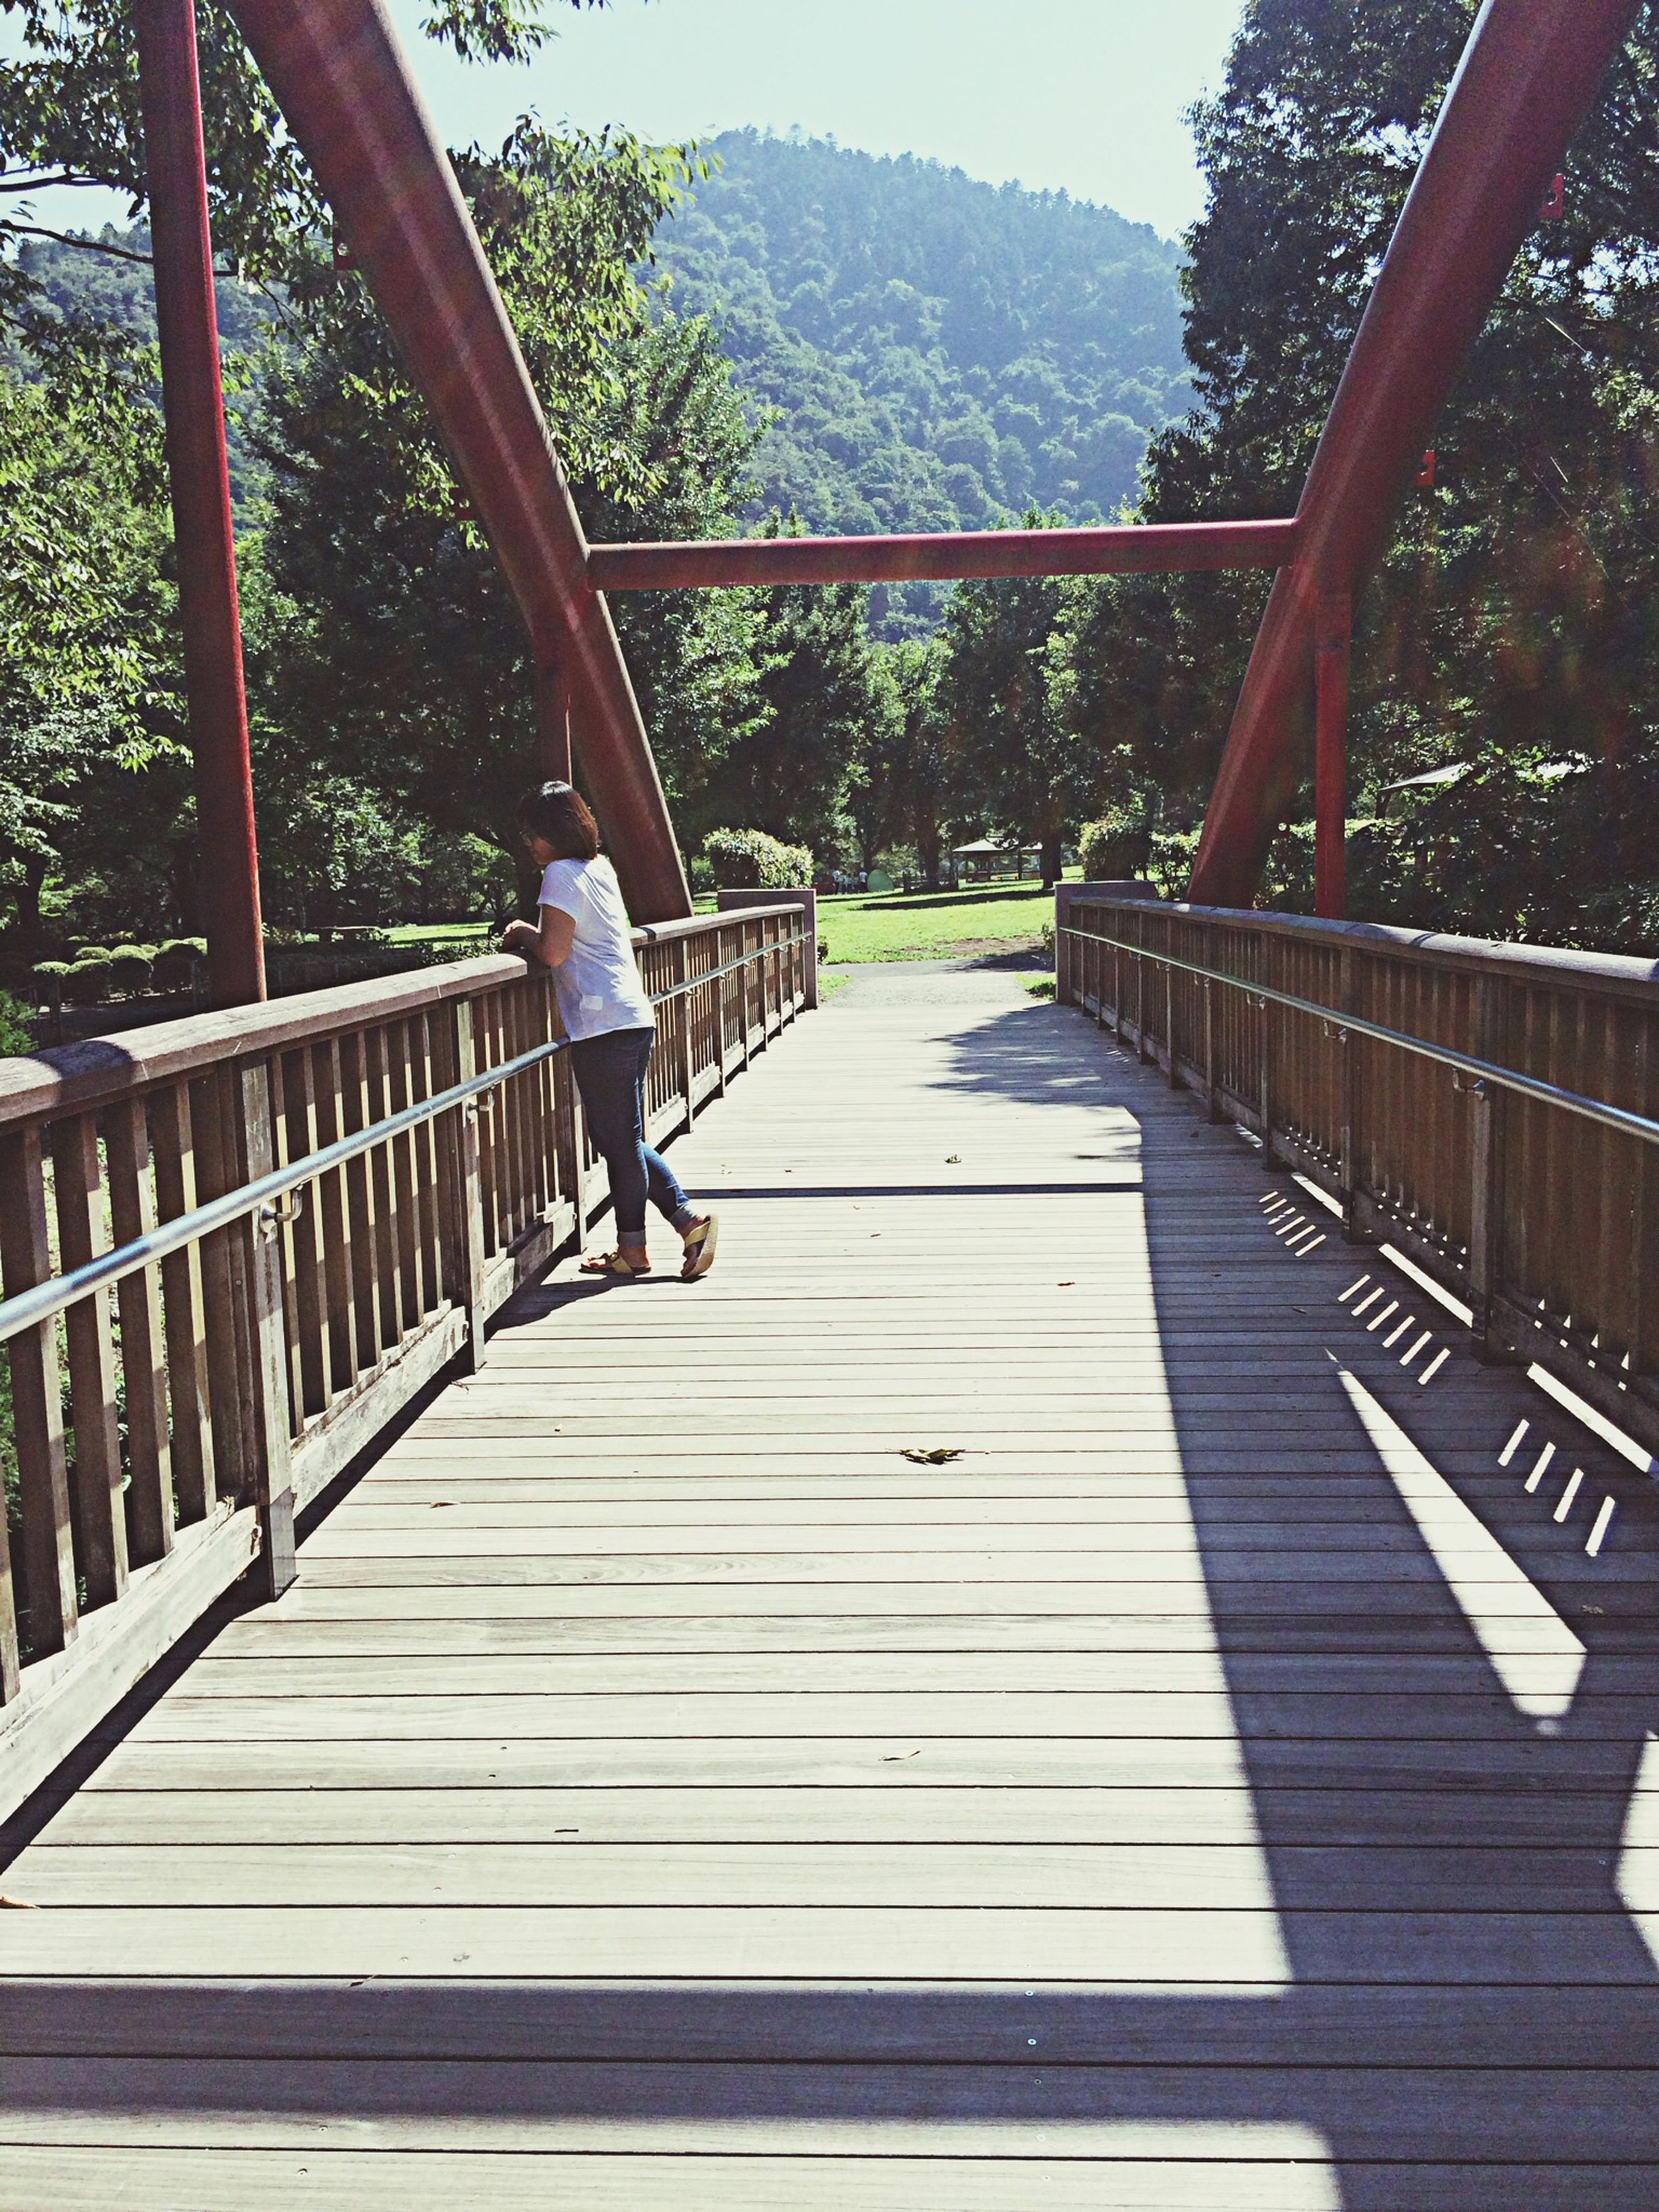 tree, railing, lifestyles, leisure activity, full length, footbridge, mountain, bridge - man made structure, built structure, steps, rear view, steps and staircases, connection, the way forward, casual clothing, person, walking, men